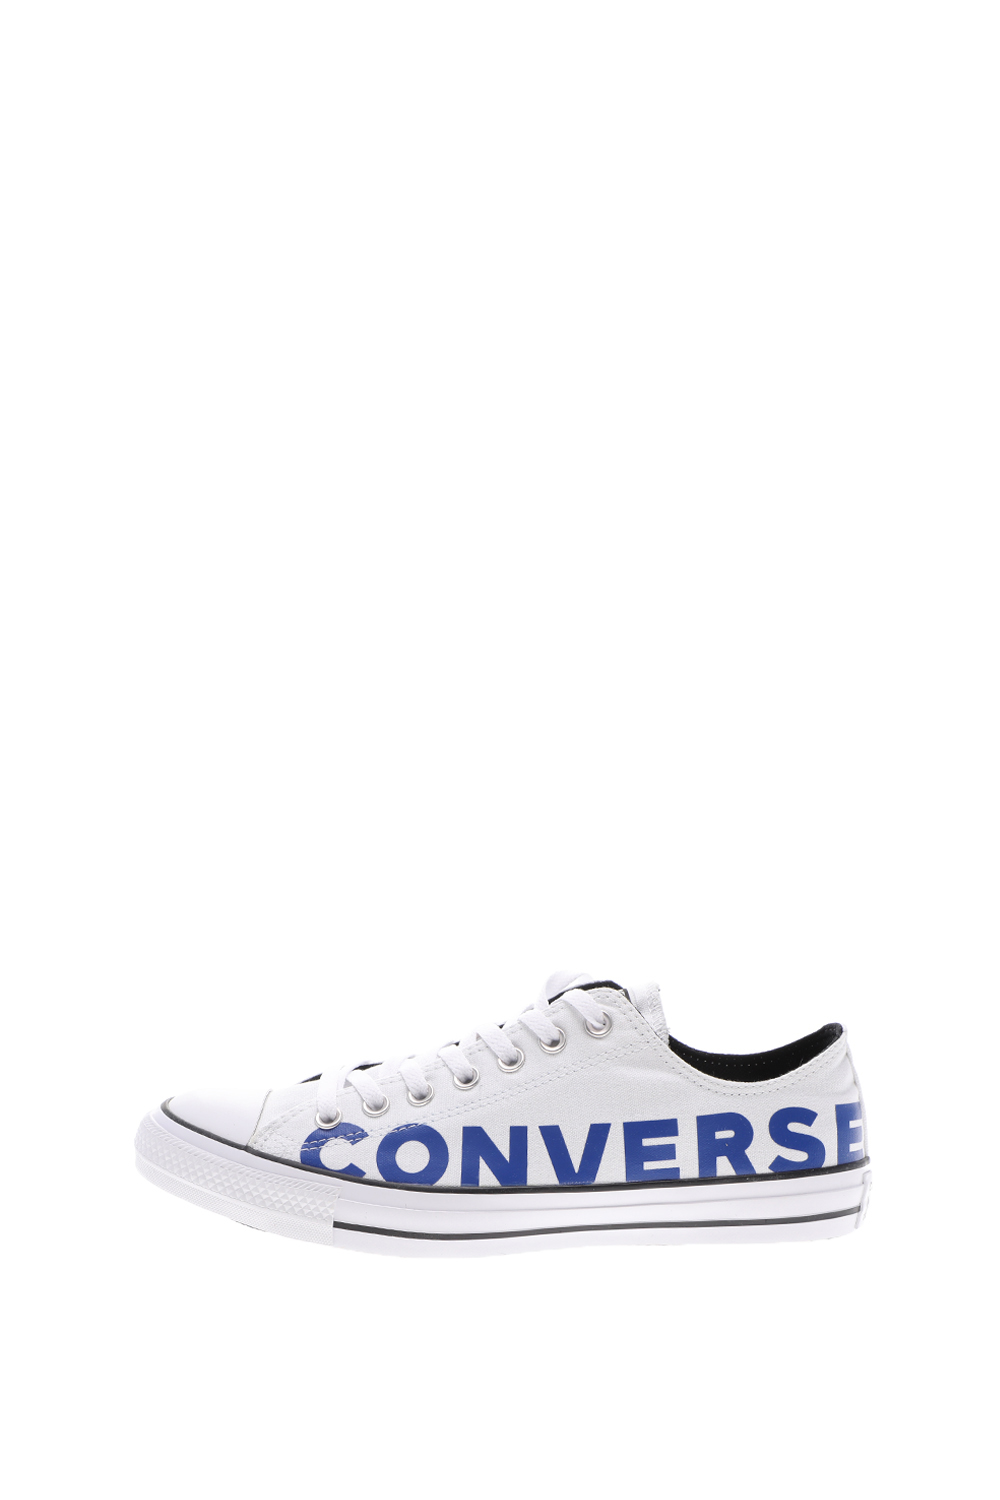 CONVERSE – Unisex sneakers CONVERSE CHUCK TAYLOR ALL STAR λευκά μπλε